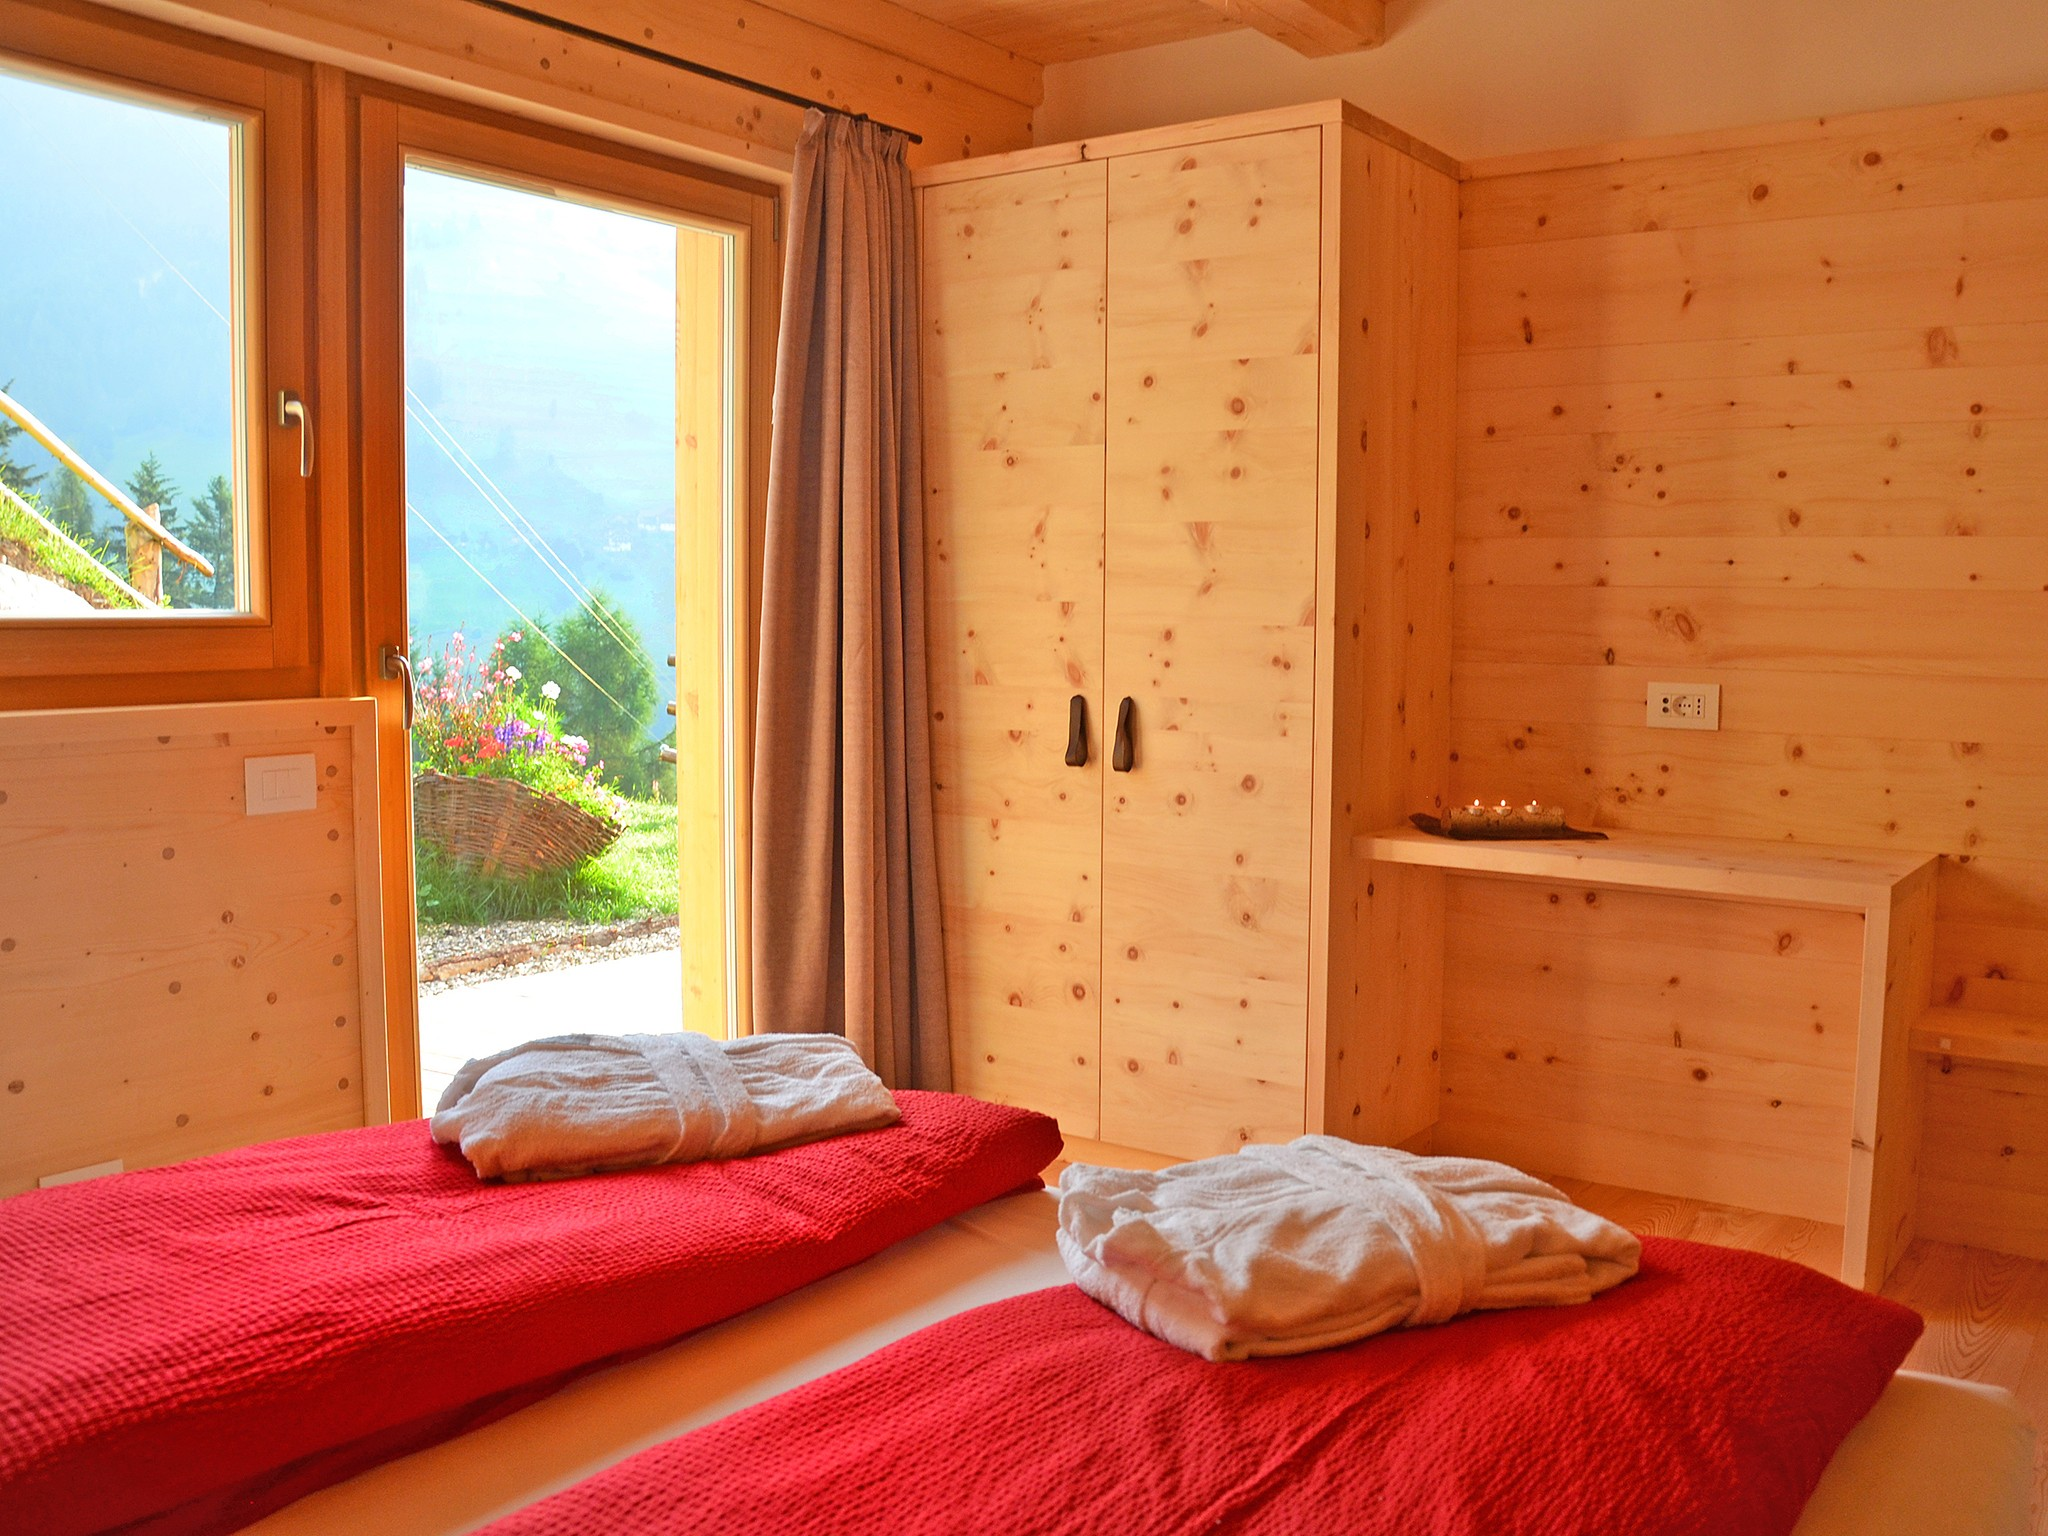 Dolomiti-Lodge - bedroom